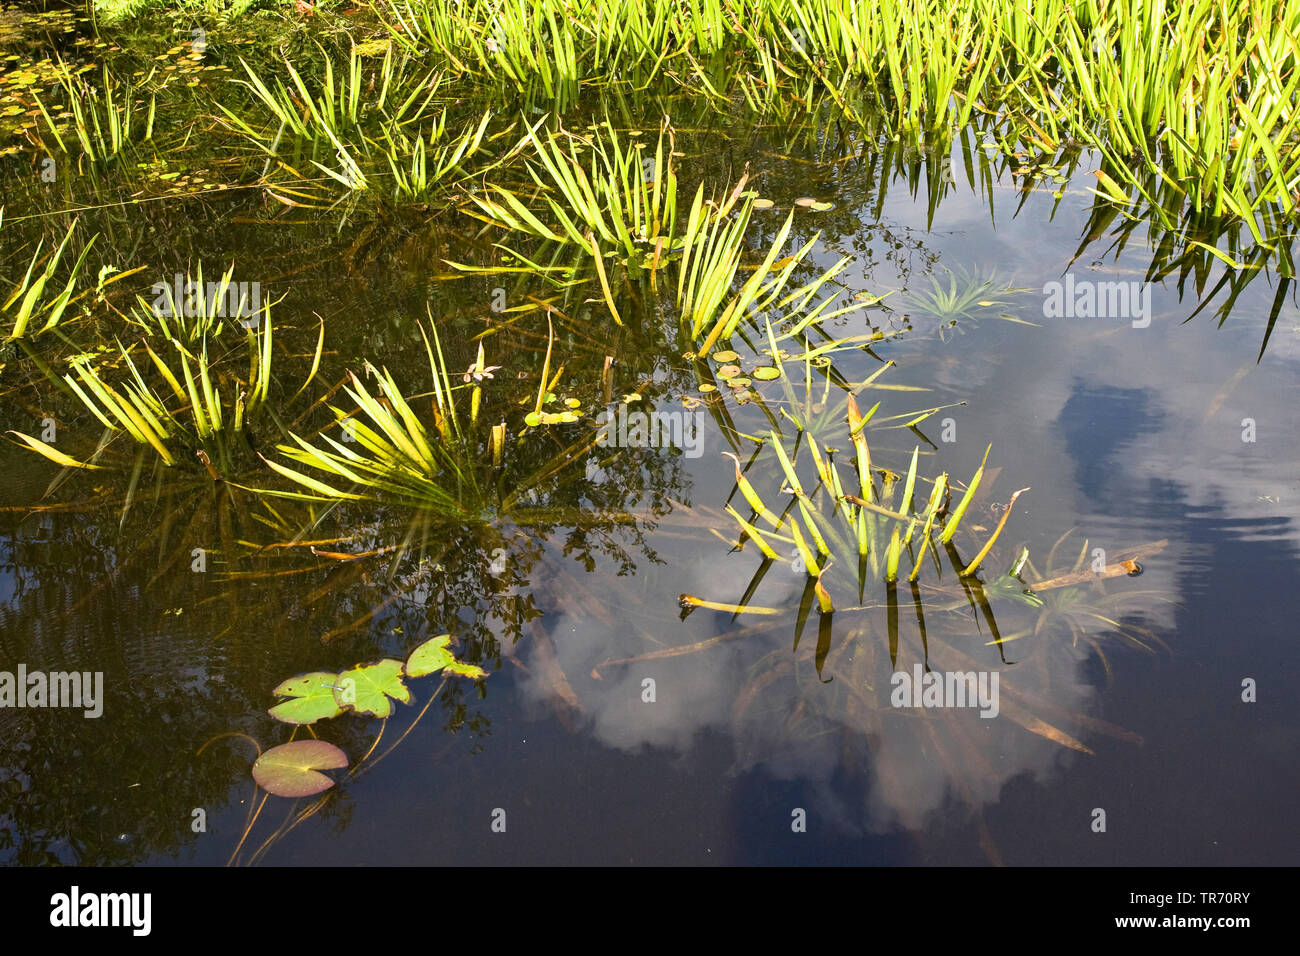 crab's-claw, water-soldier (Stratiotes aloides), Netherlands Stock Photo